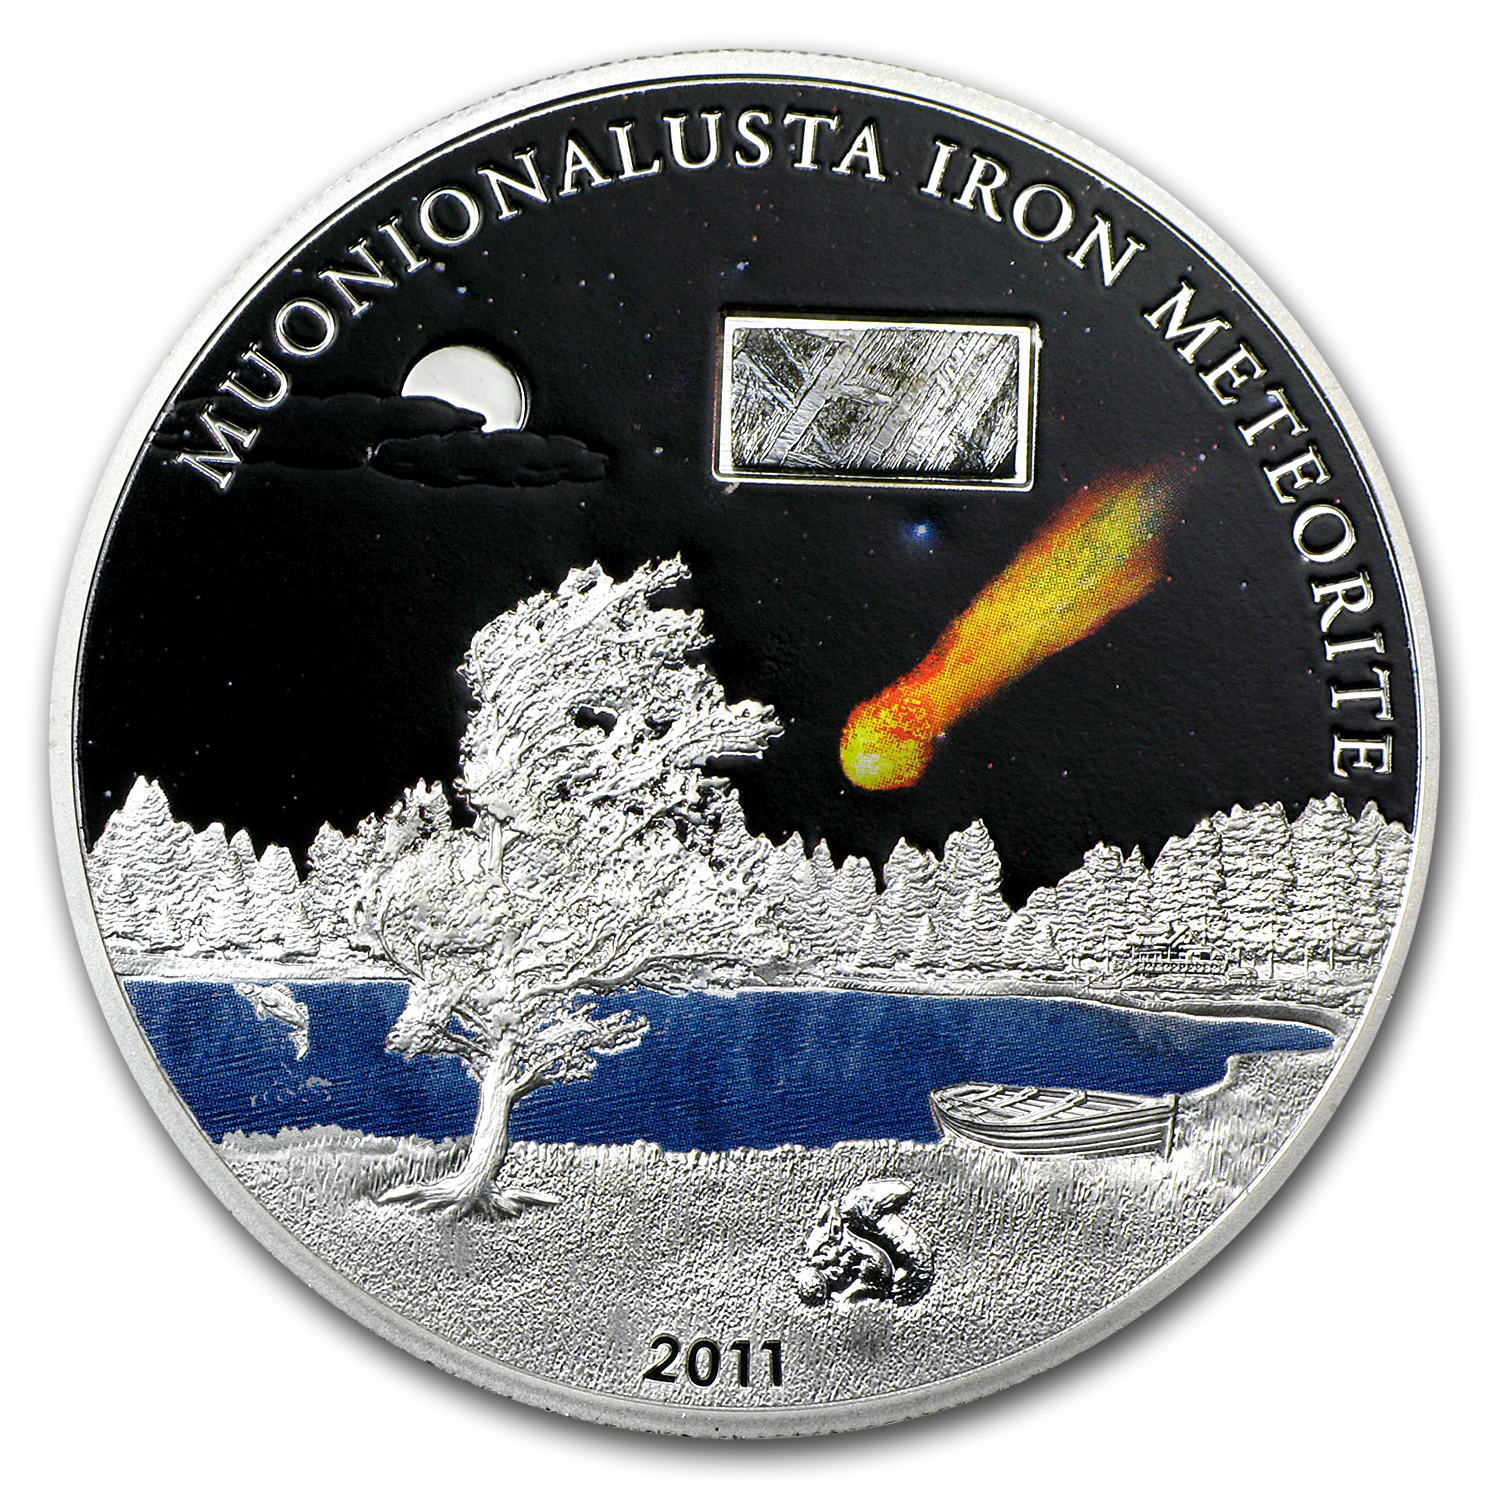 Cook Islands 2011 Proof Silver $5 Muonionalusta Iron Meteorite